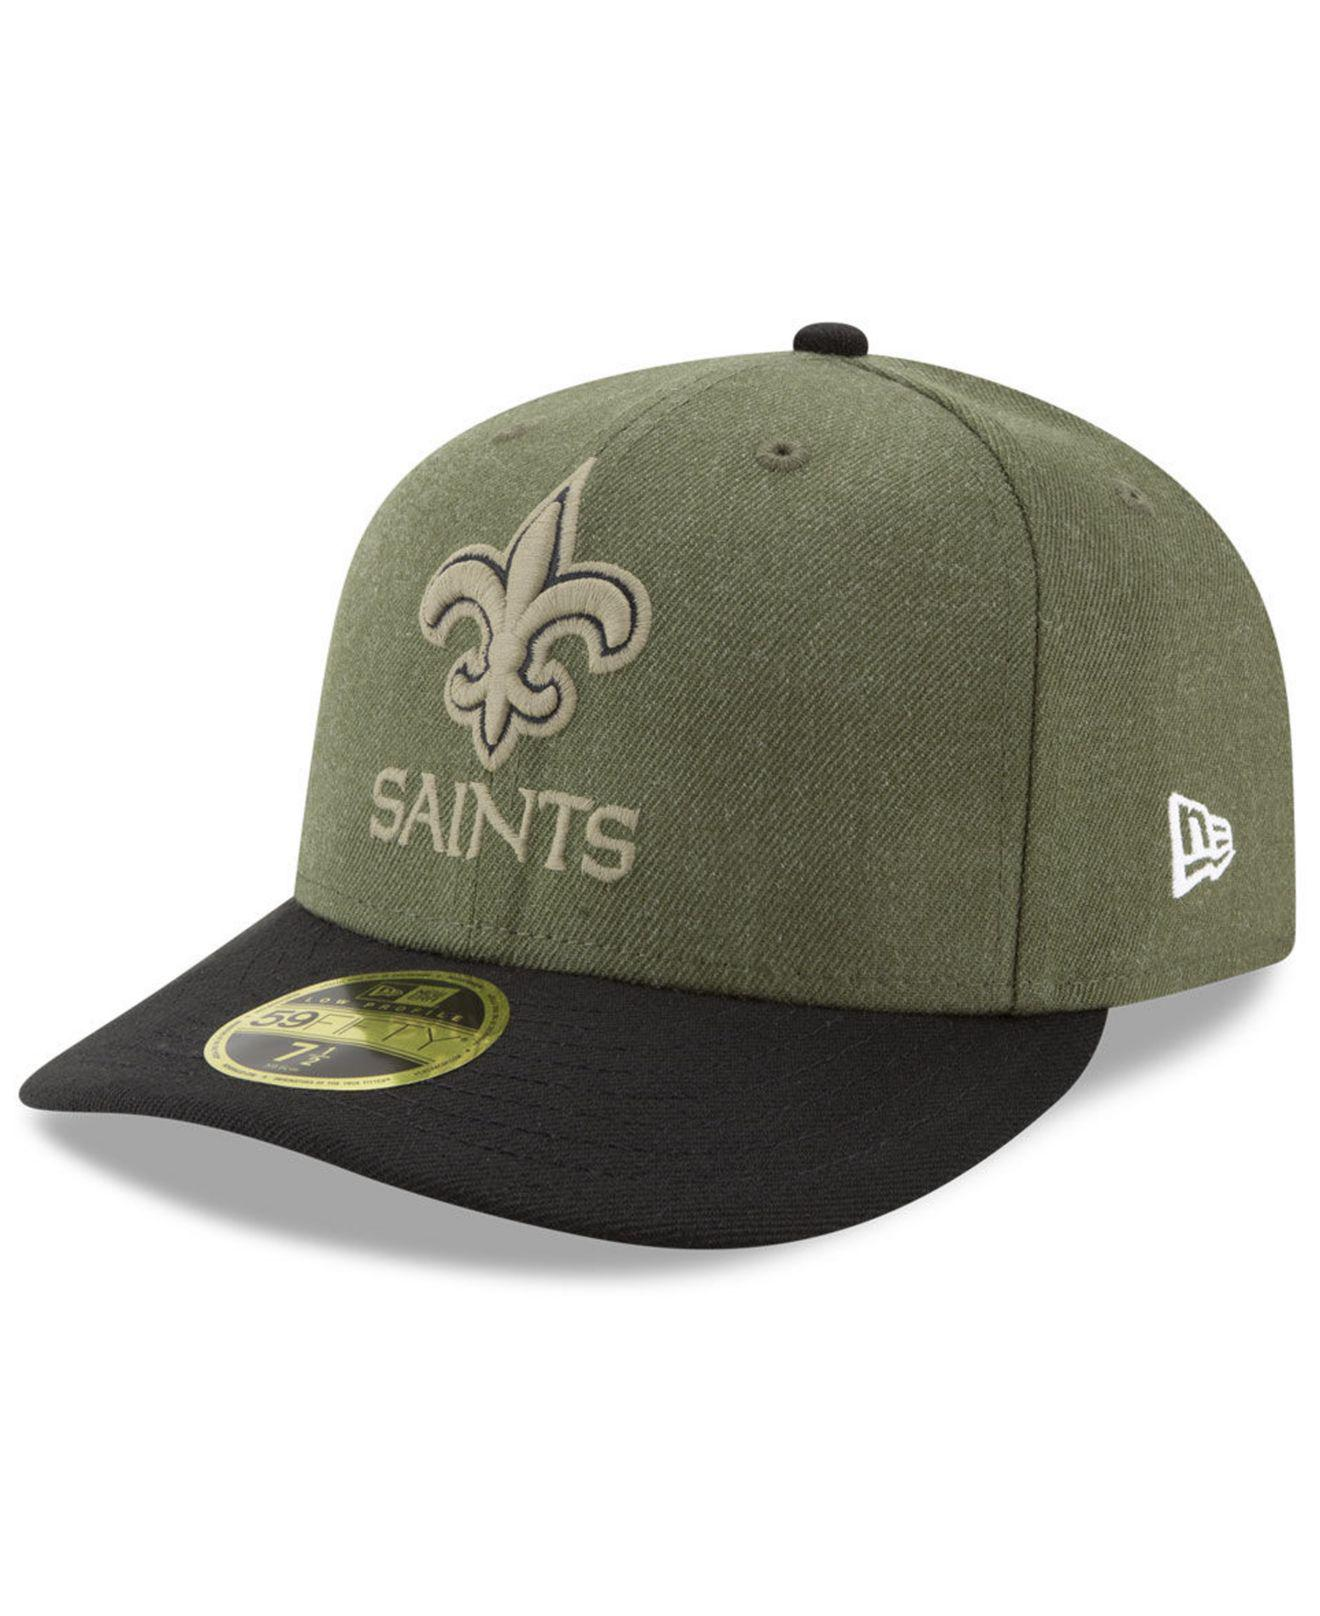 KTZ - Green New Orleans Saints Salute To Service Low Profile 59fifty Fitted  Cap 2018 for. View fullscreen a017d3c69